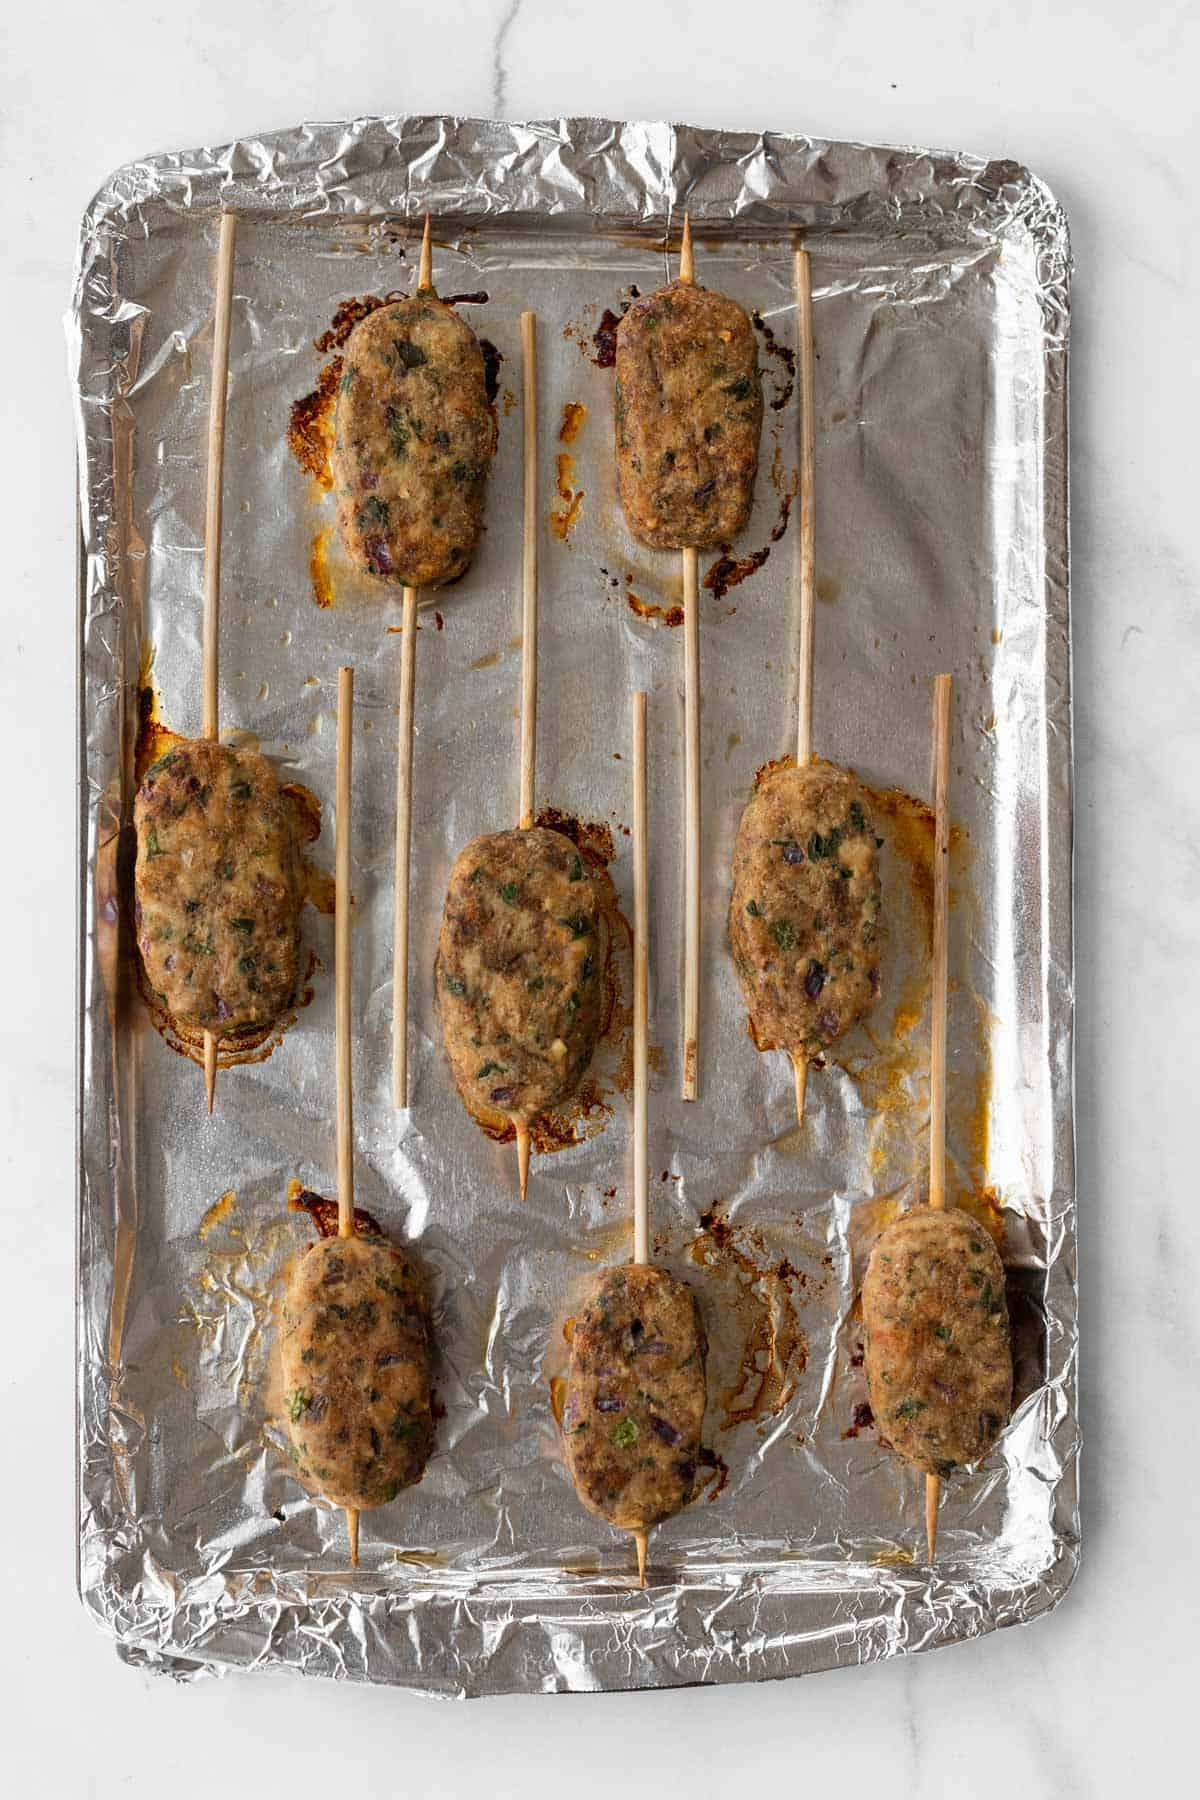 Cooked chicken kofta kebabs on a foil-lined sheet pan.